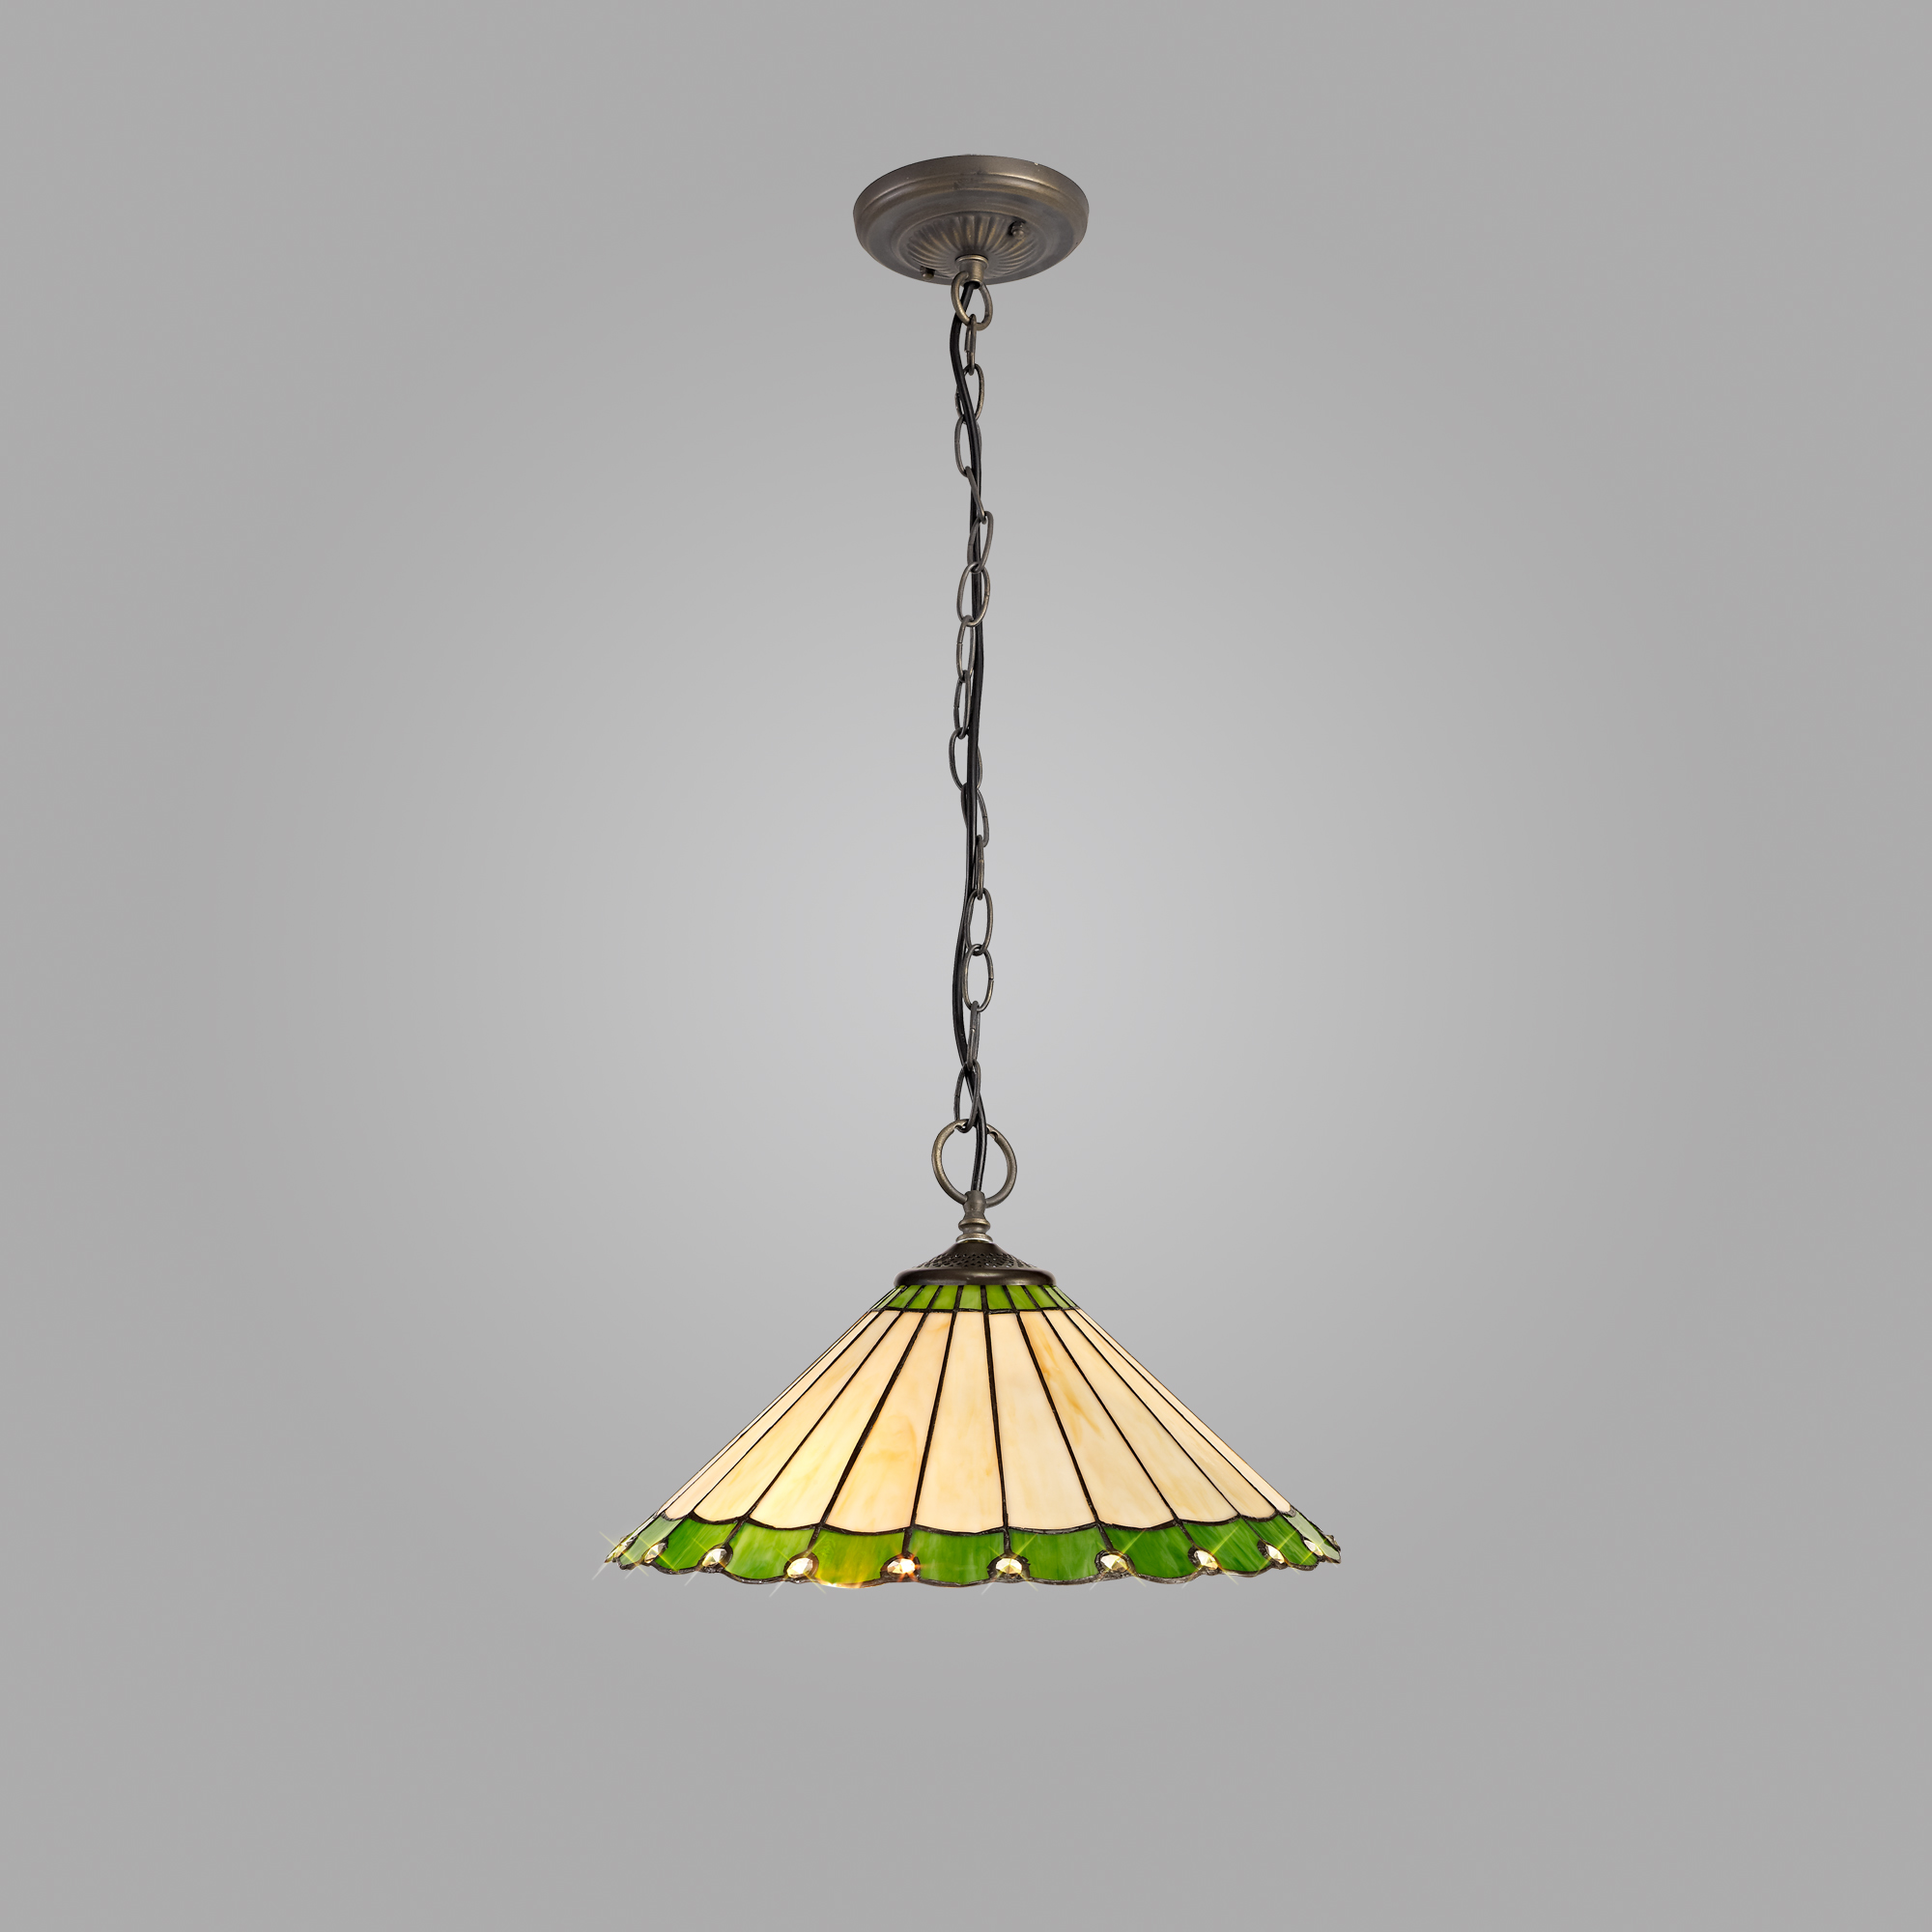 3 Light Downlighter Pendant E27 With 40cm Tiffany Shade